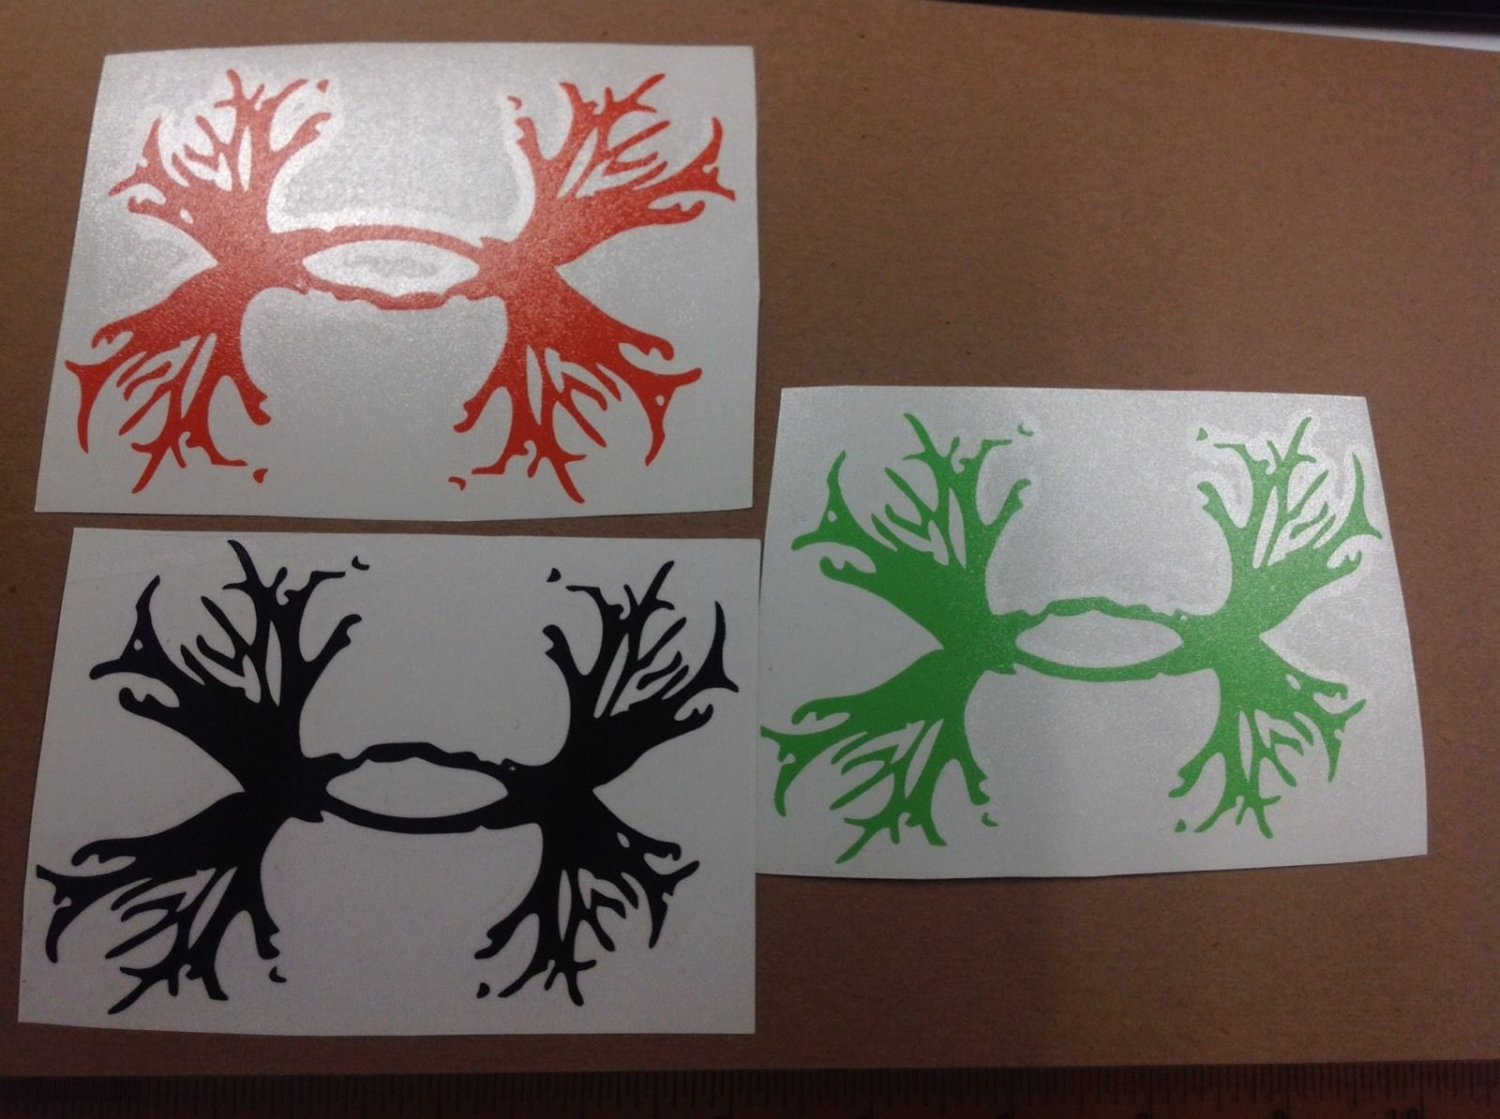 3 * Under Armour/Armor Antlers vinyl decal/sticker Deer Outdoors Hunting